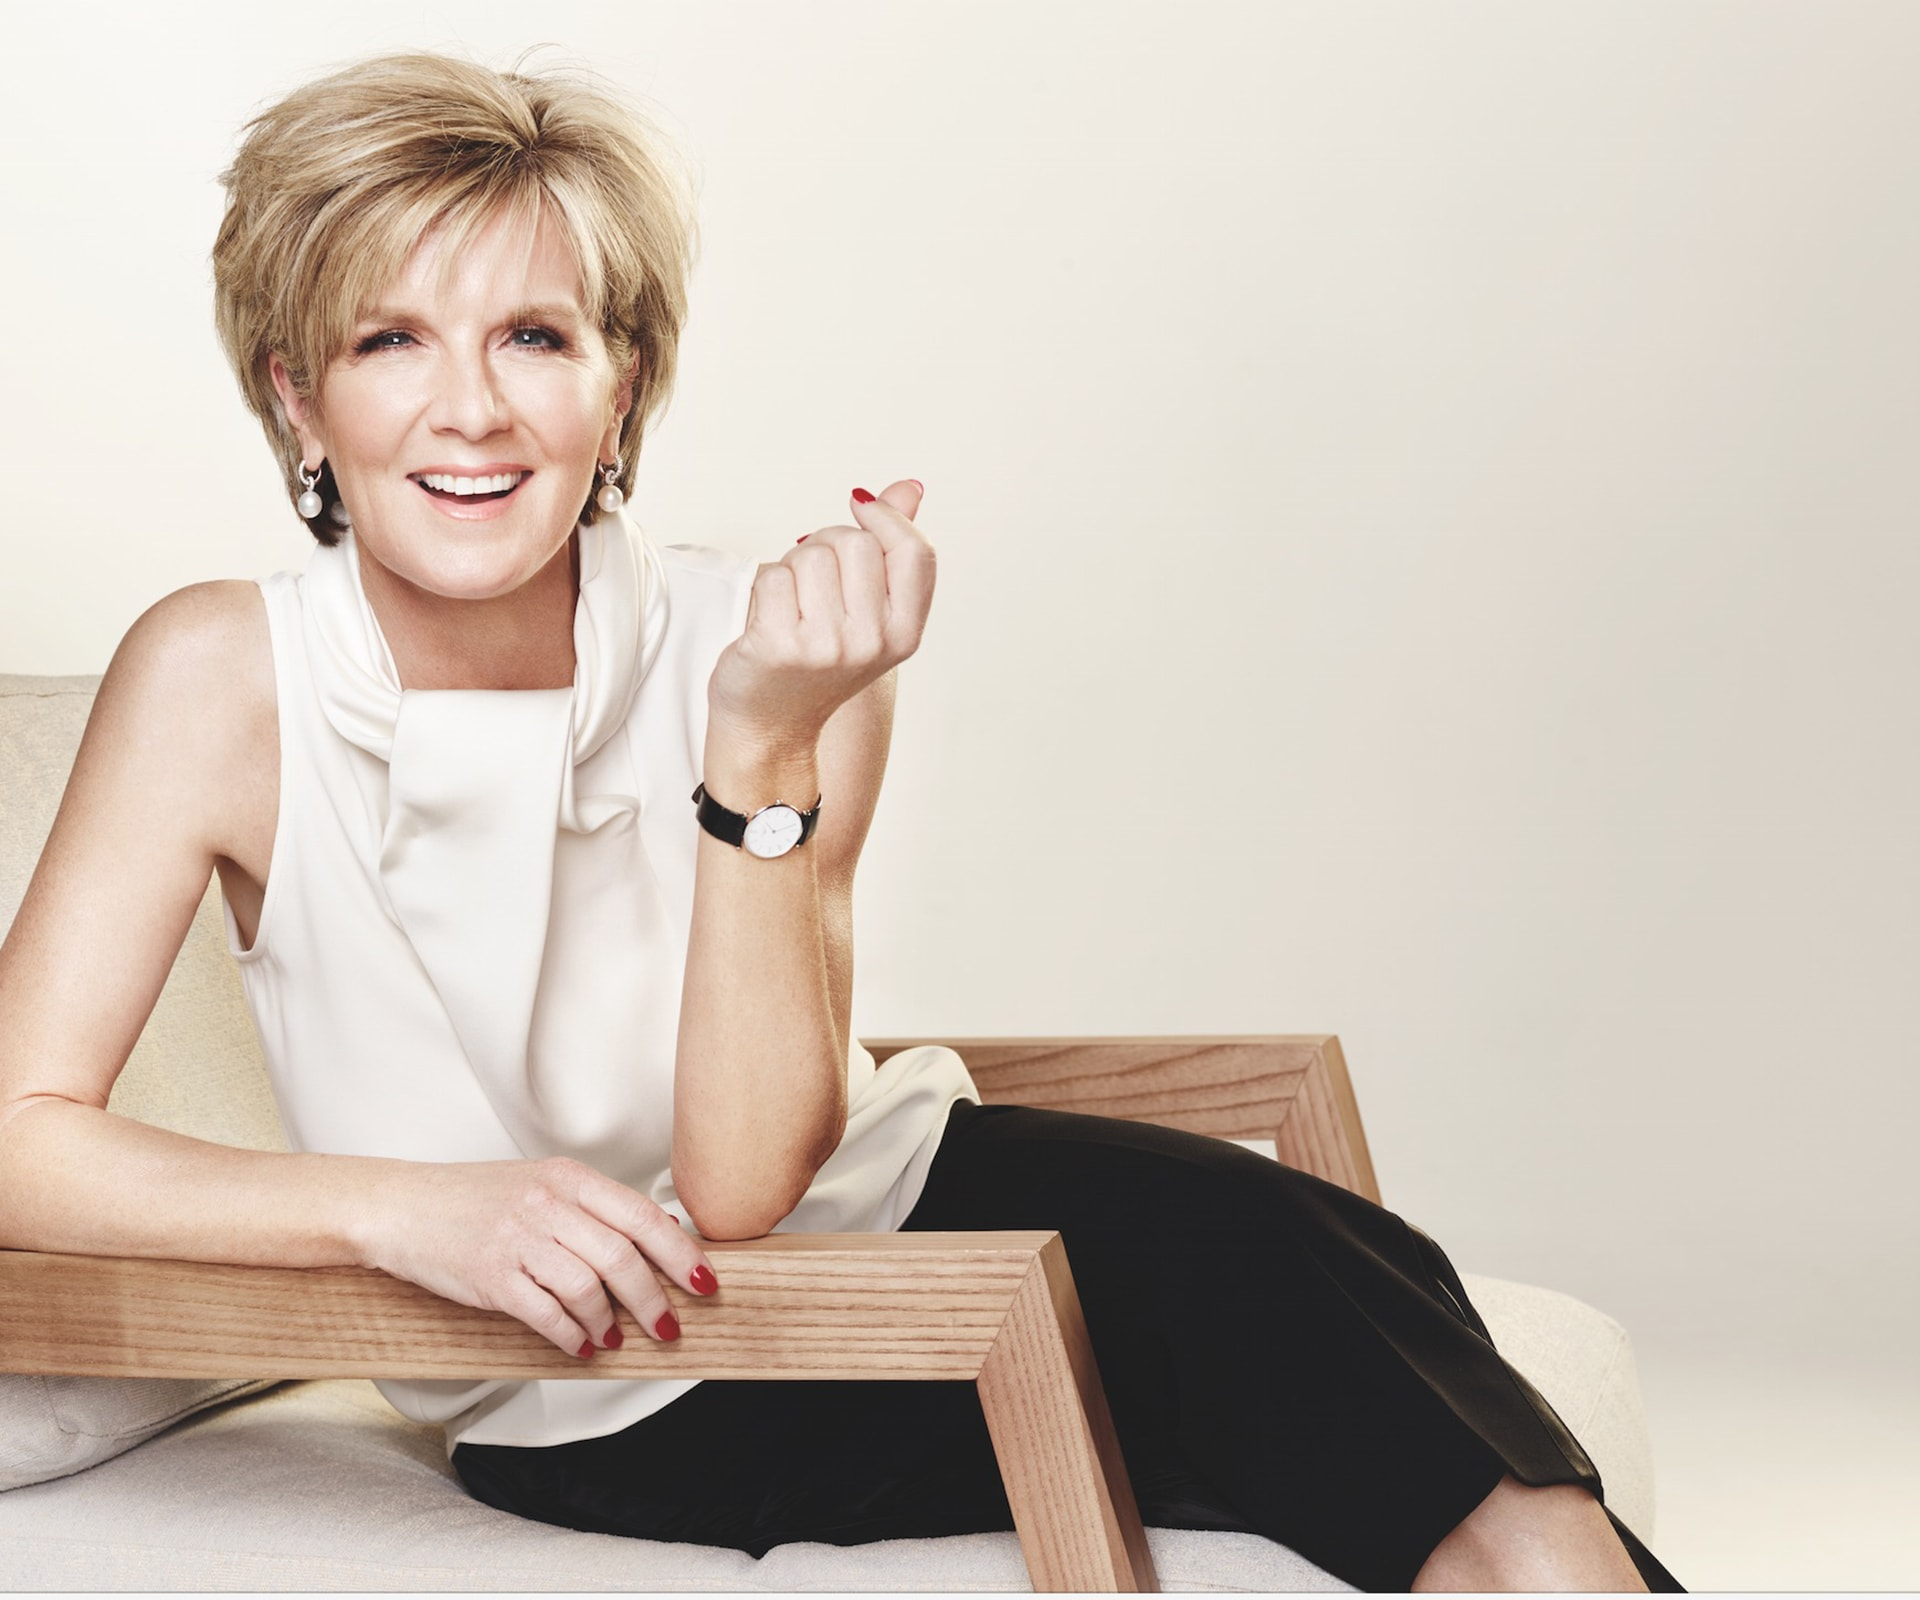 Julie Bishop Wallpapers hd